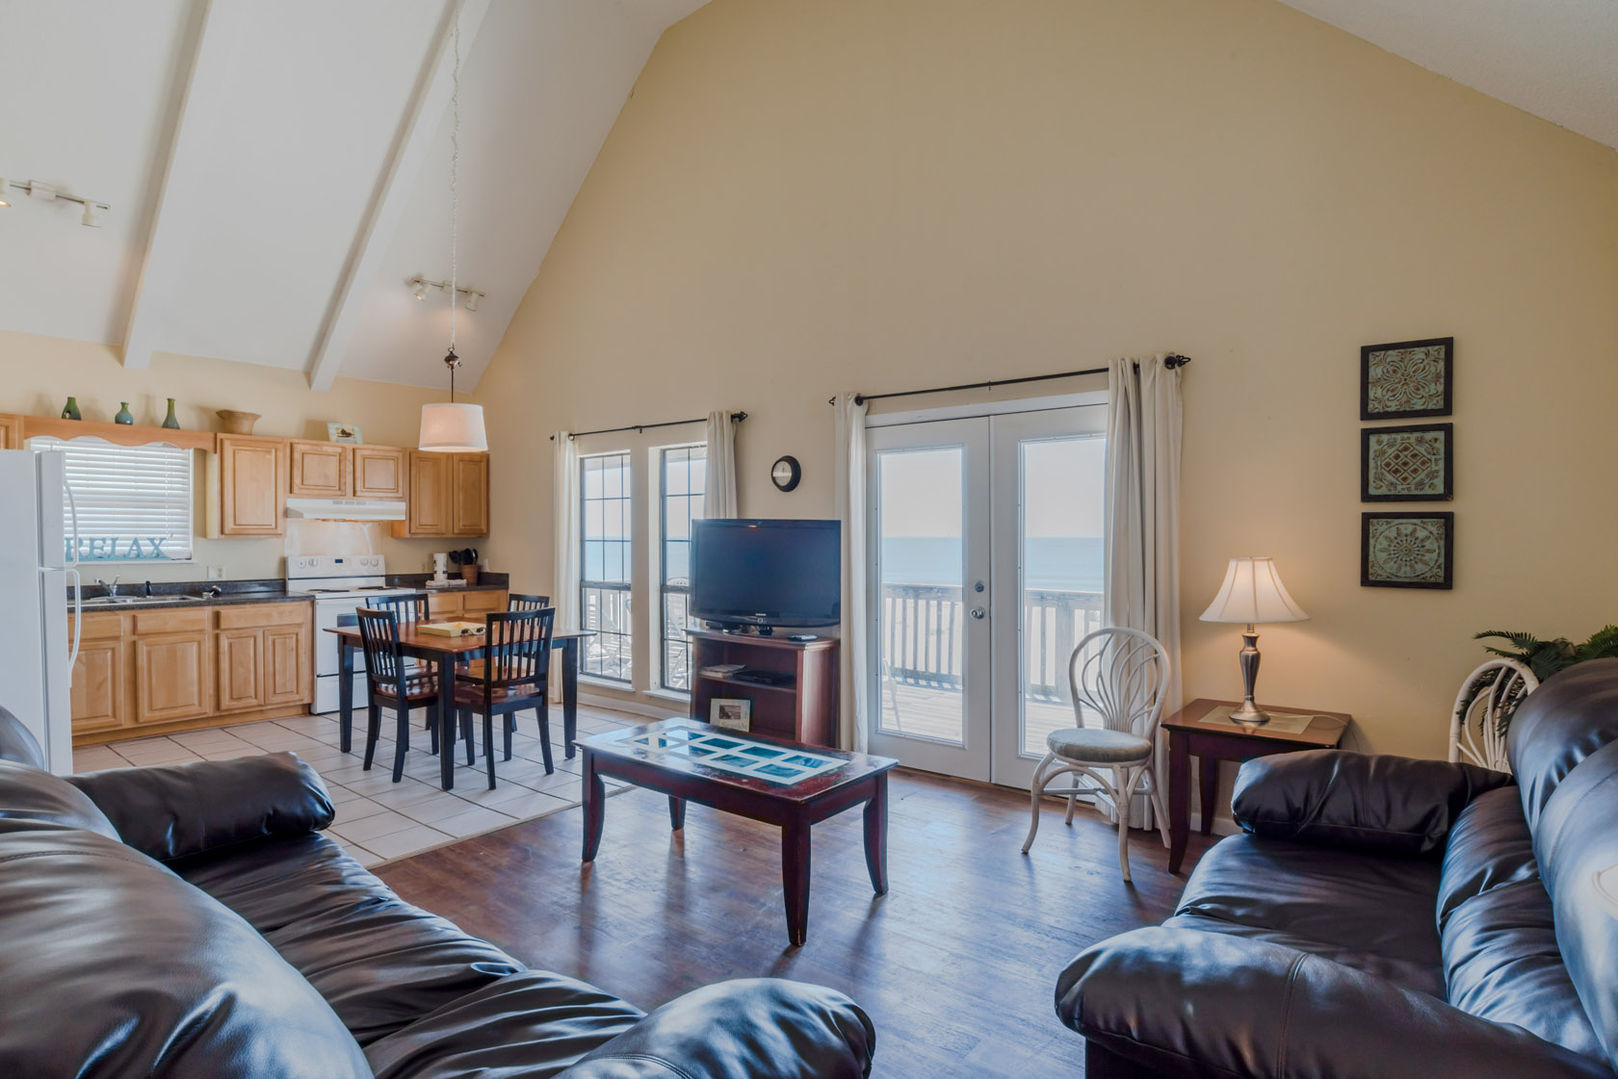 The Living Spaces of this Beach House Rental in Gulf Shores Are Open And Bright With A Vaulted Ceiling and plenty of seating